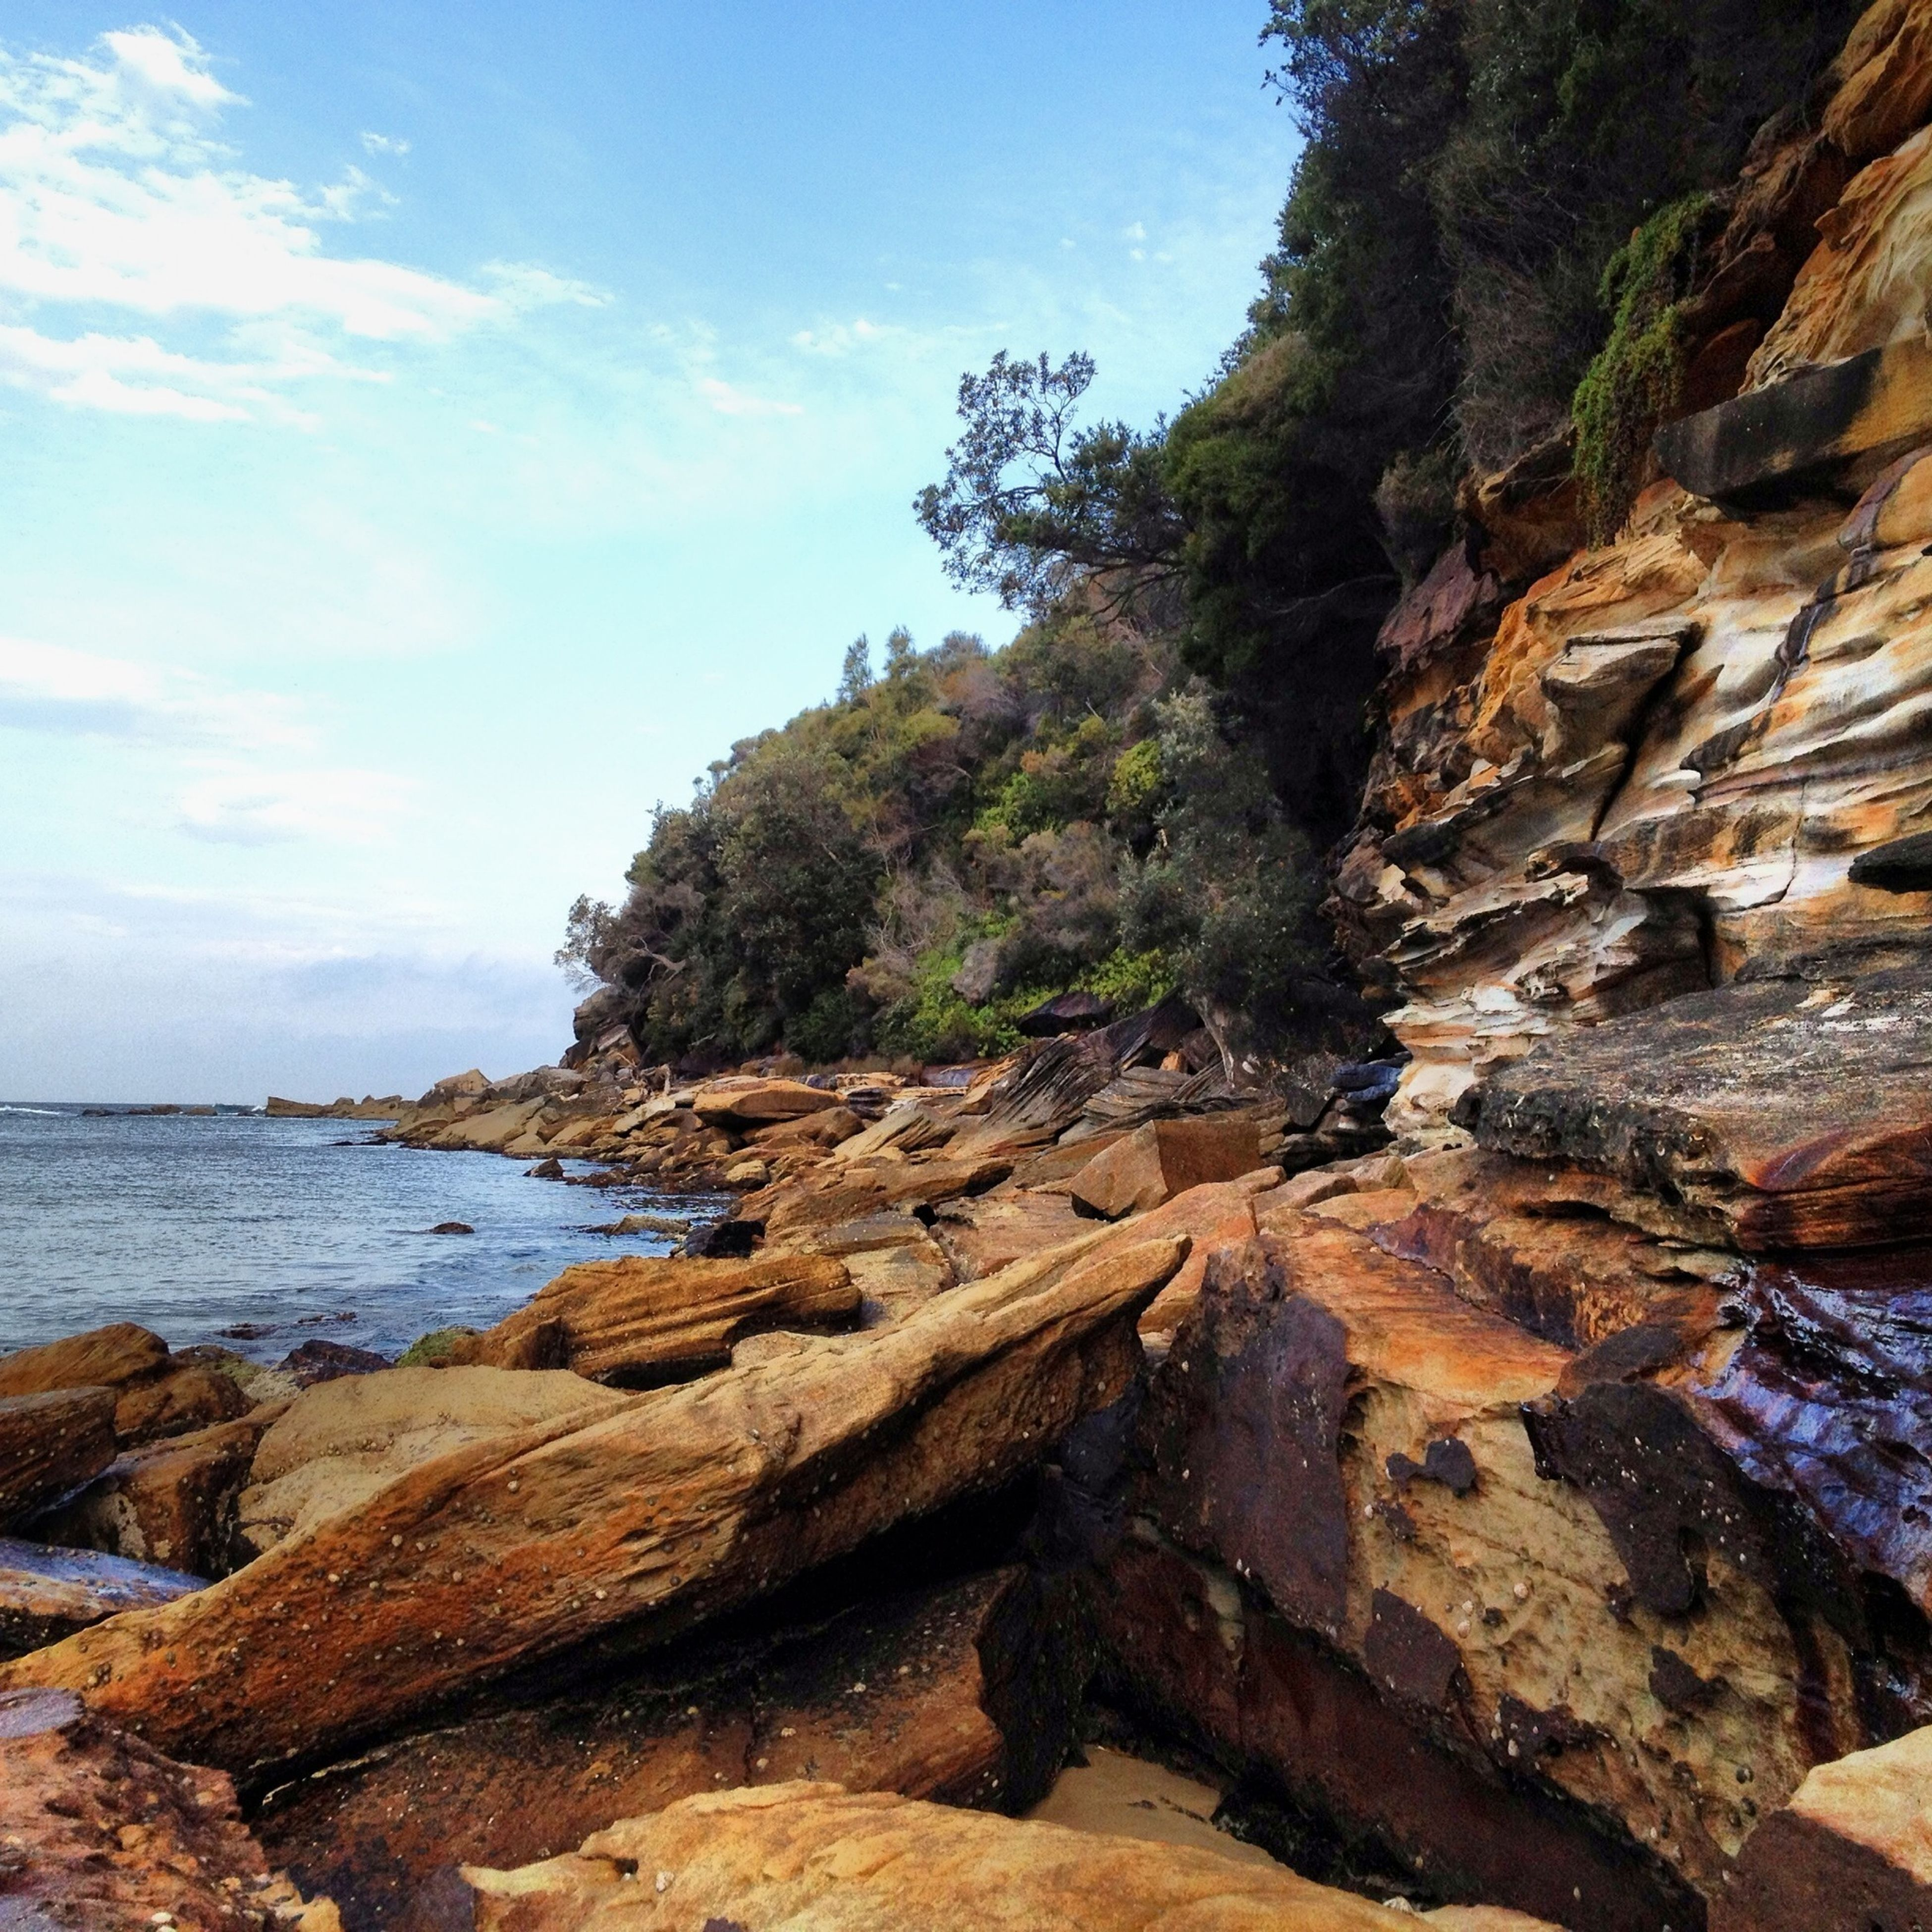 sea, water, tranquility, tranquil scene, beach, sky, scenics, rock - object, beauty in nature, tree, nature, shore, rock formation, horizon over water, rock, idyllic, coastline, sand, cliff, day